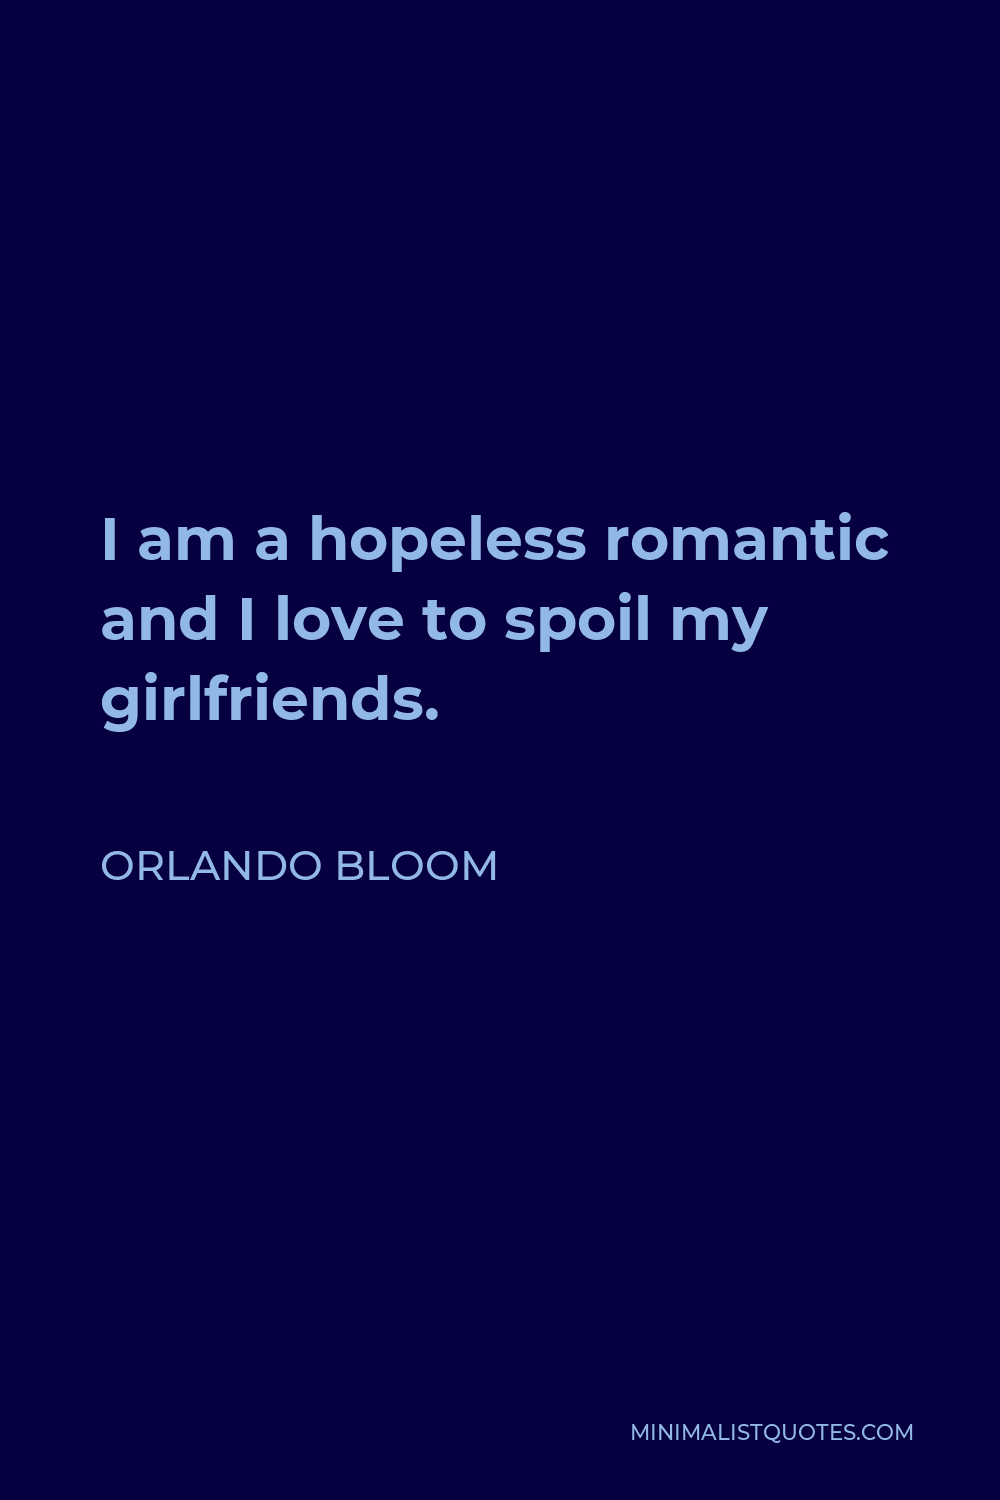 Orlando Bloom Quote - I am a hopeless romantic and I love to spoil my girlfriends.